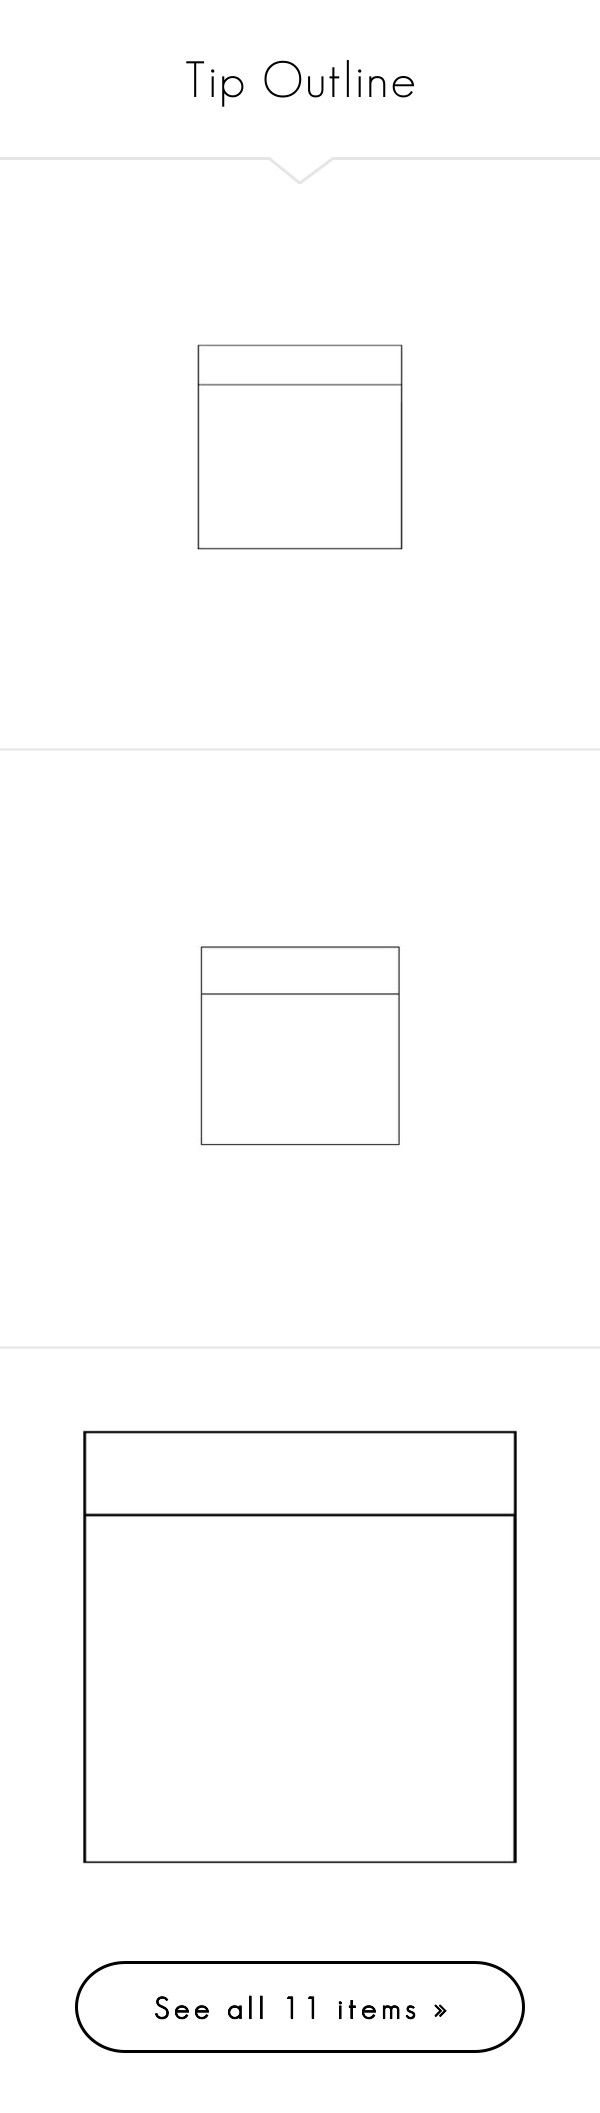 """""""Tip Outline"""" by ac-awesome ❤ liked on Polyvore featuring tip outlines, templates, outlines, fillers, frames, backgrounds, borders, picture frame, effects and text"""